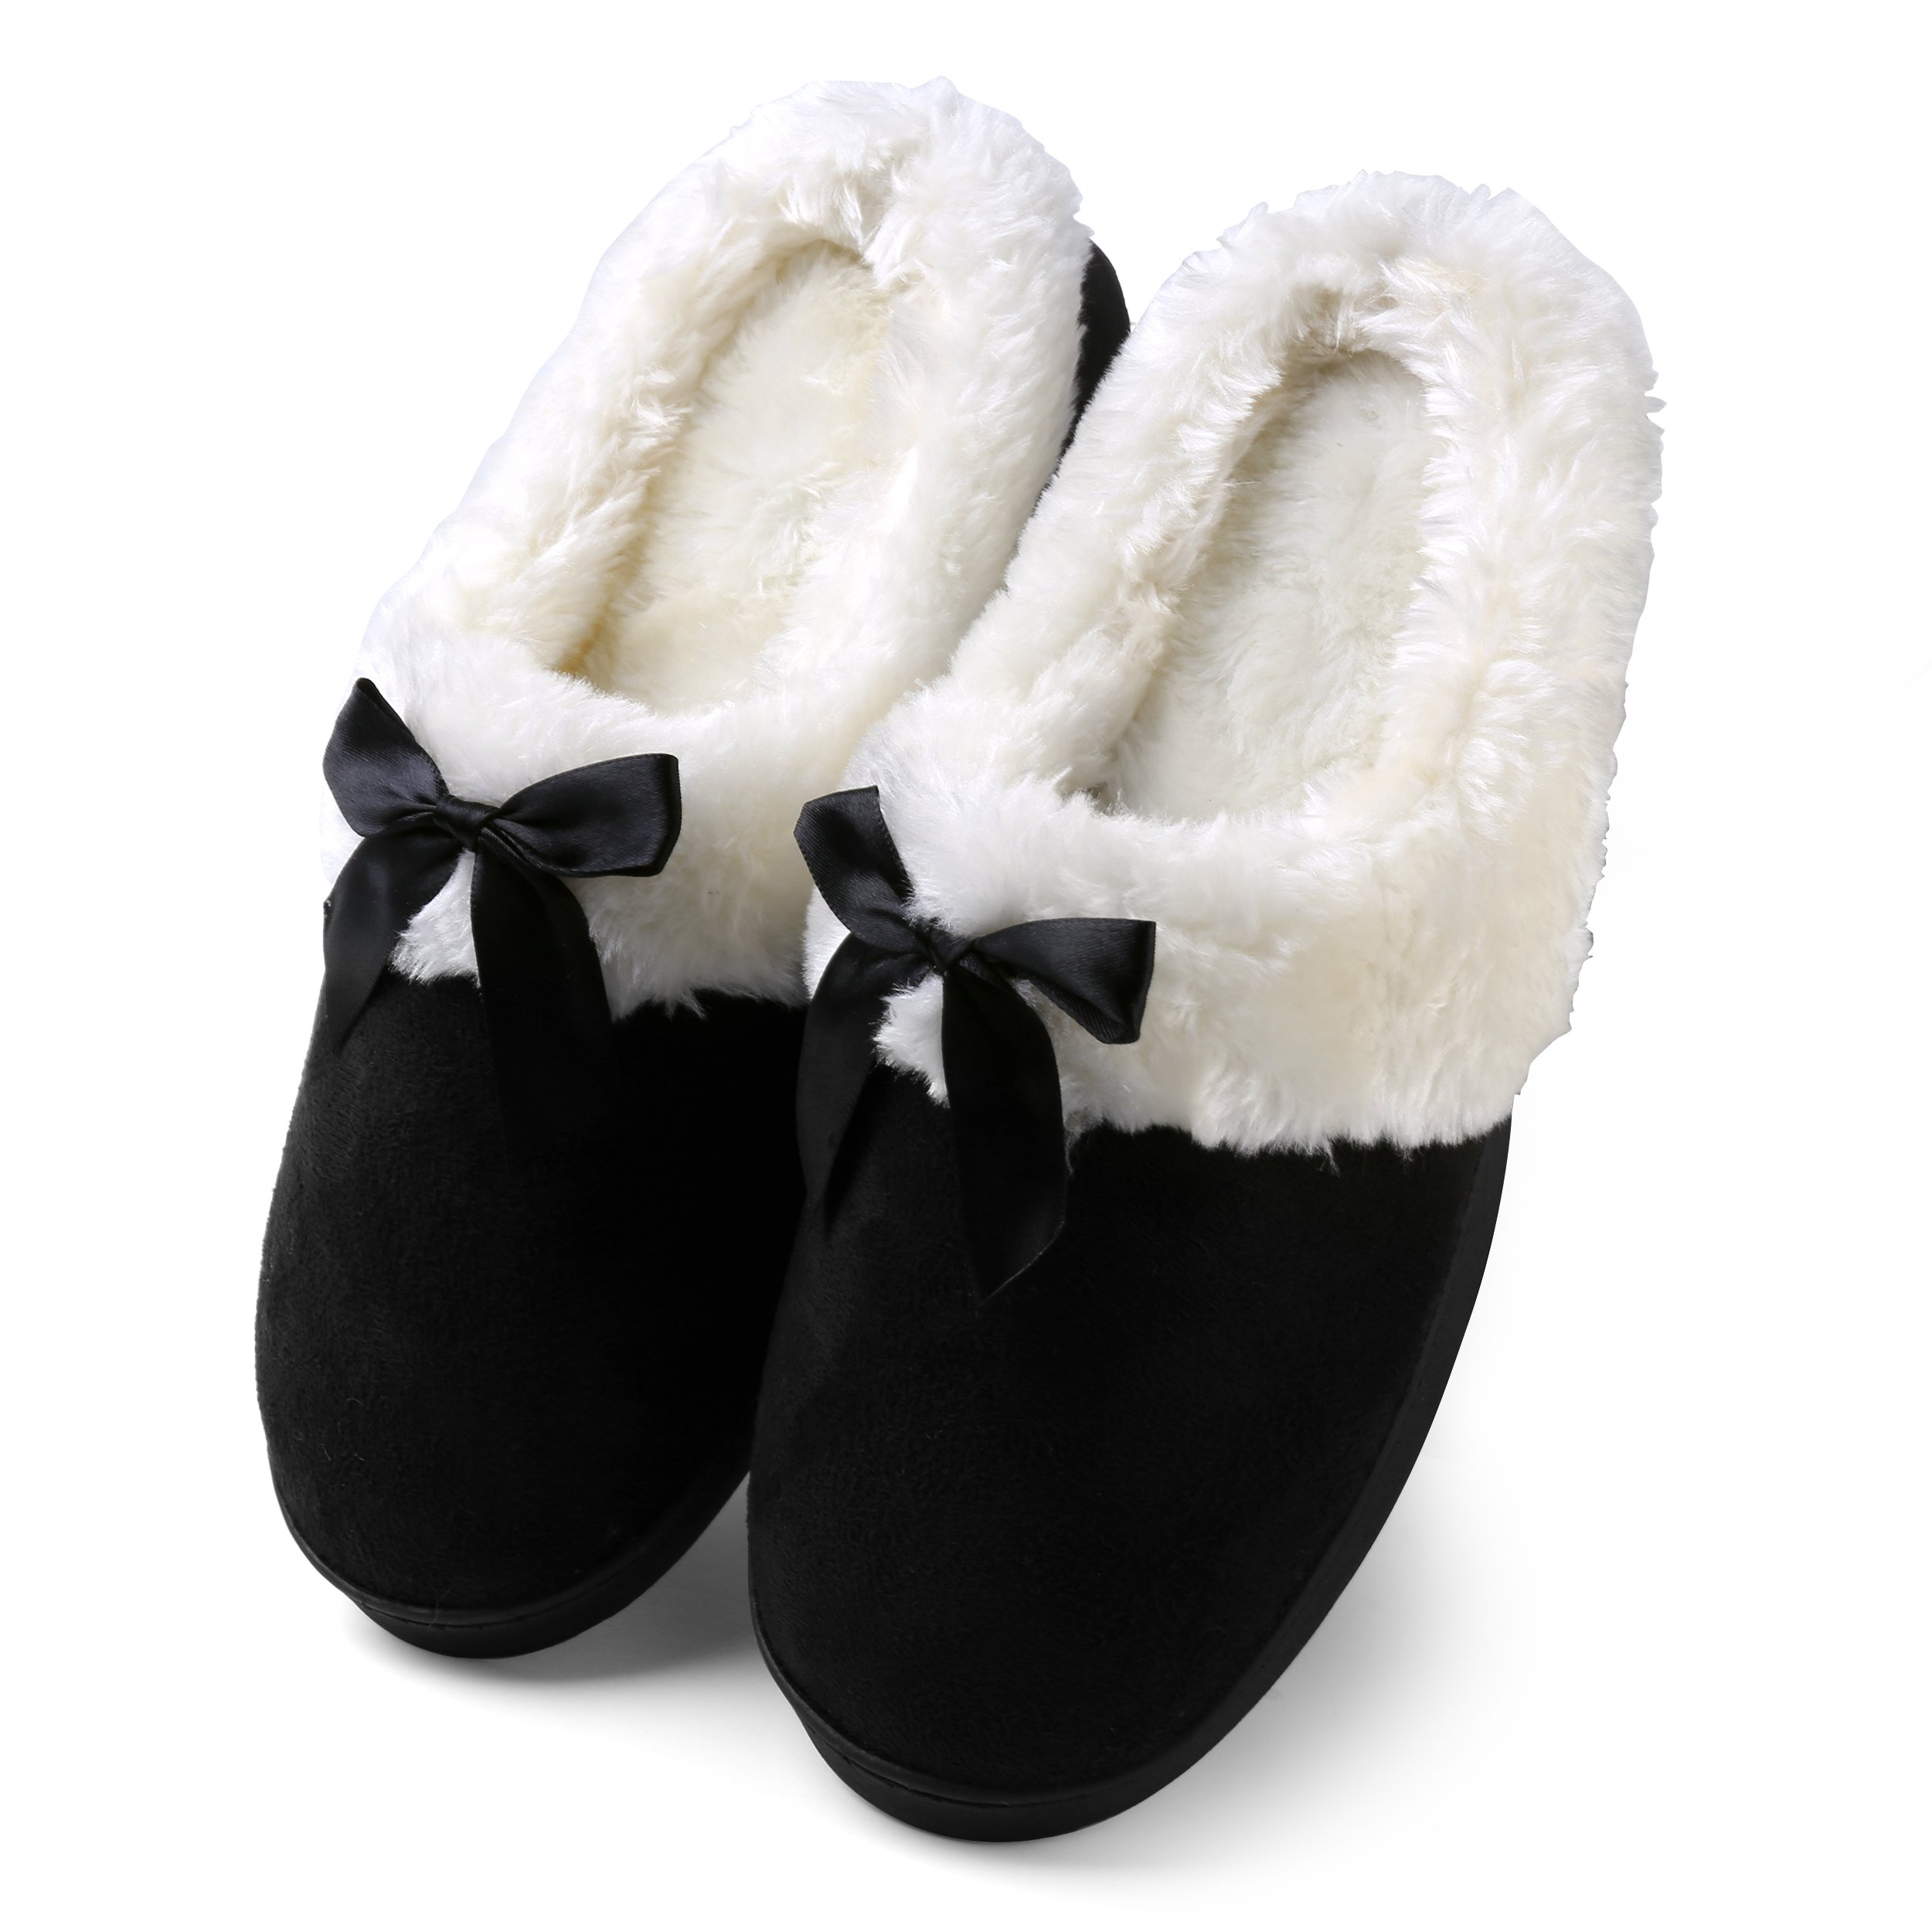 Aerusi Women's Suede Plush Bow Close Toe Memory Foam Indoor Slip On Clog Slipper Bedroom Indoor House Scuff Shoes (Size 8, Black)